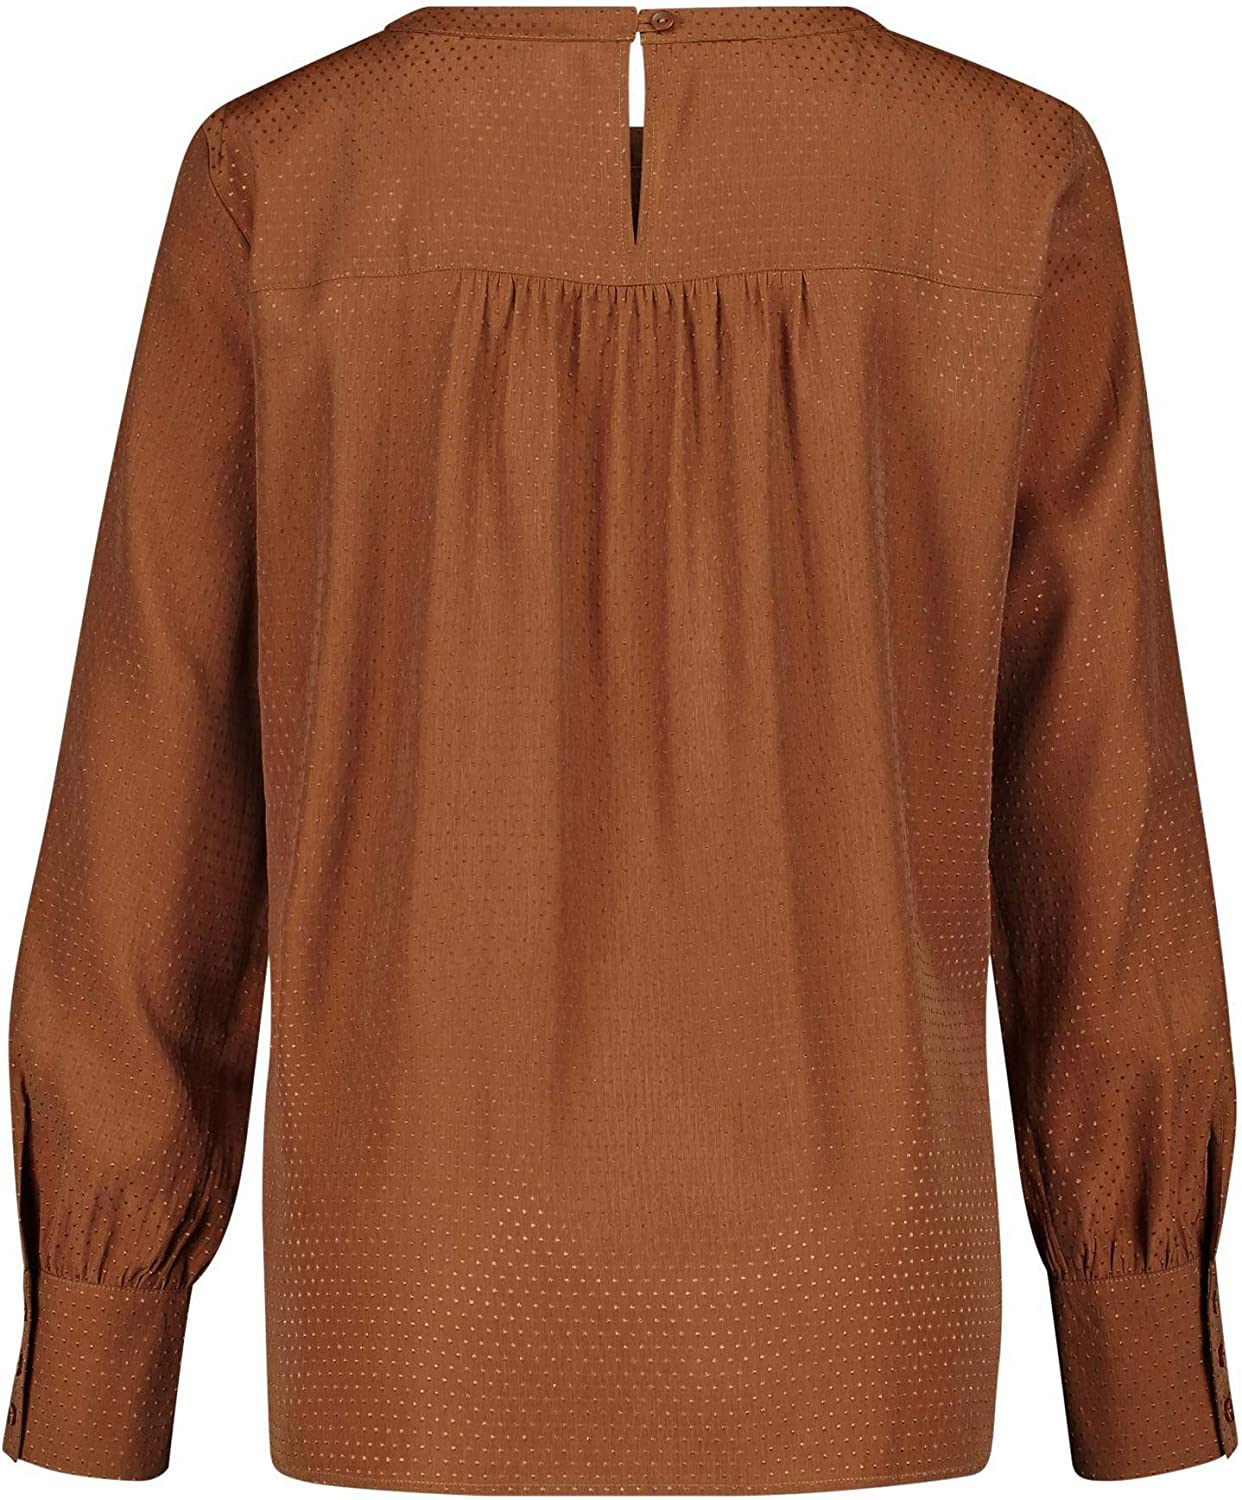 Gerry Weber Camicia Donna Marrone (Toffee 70462)